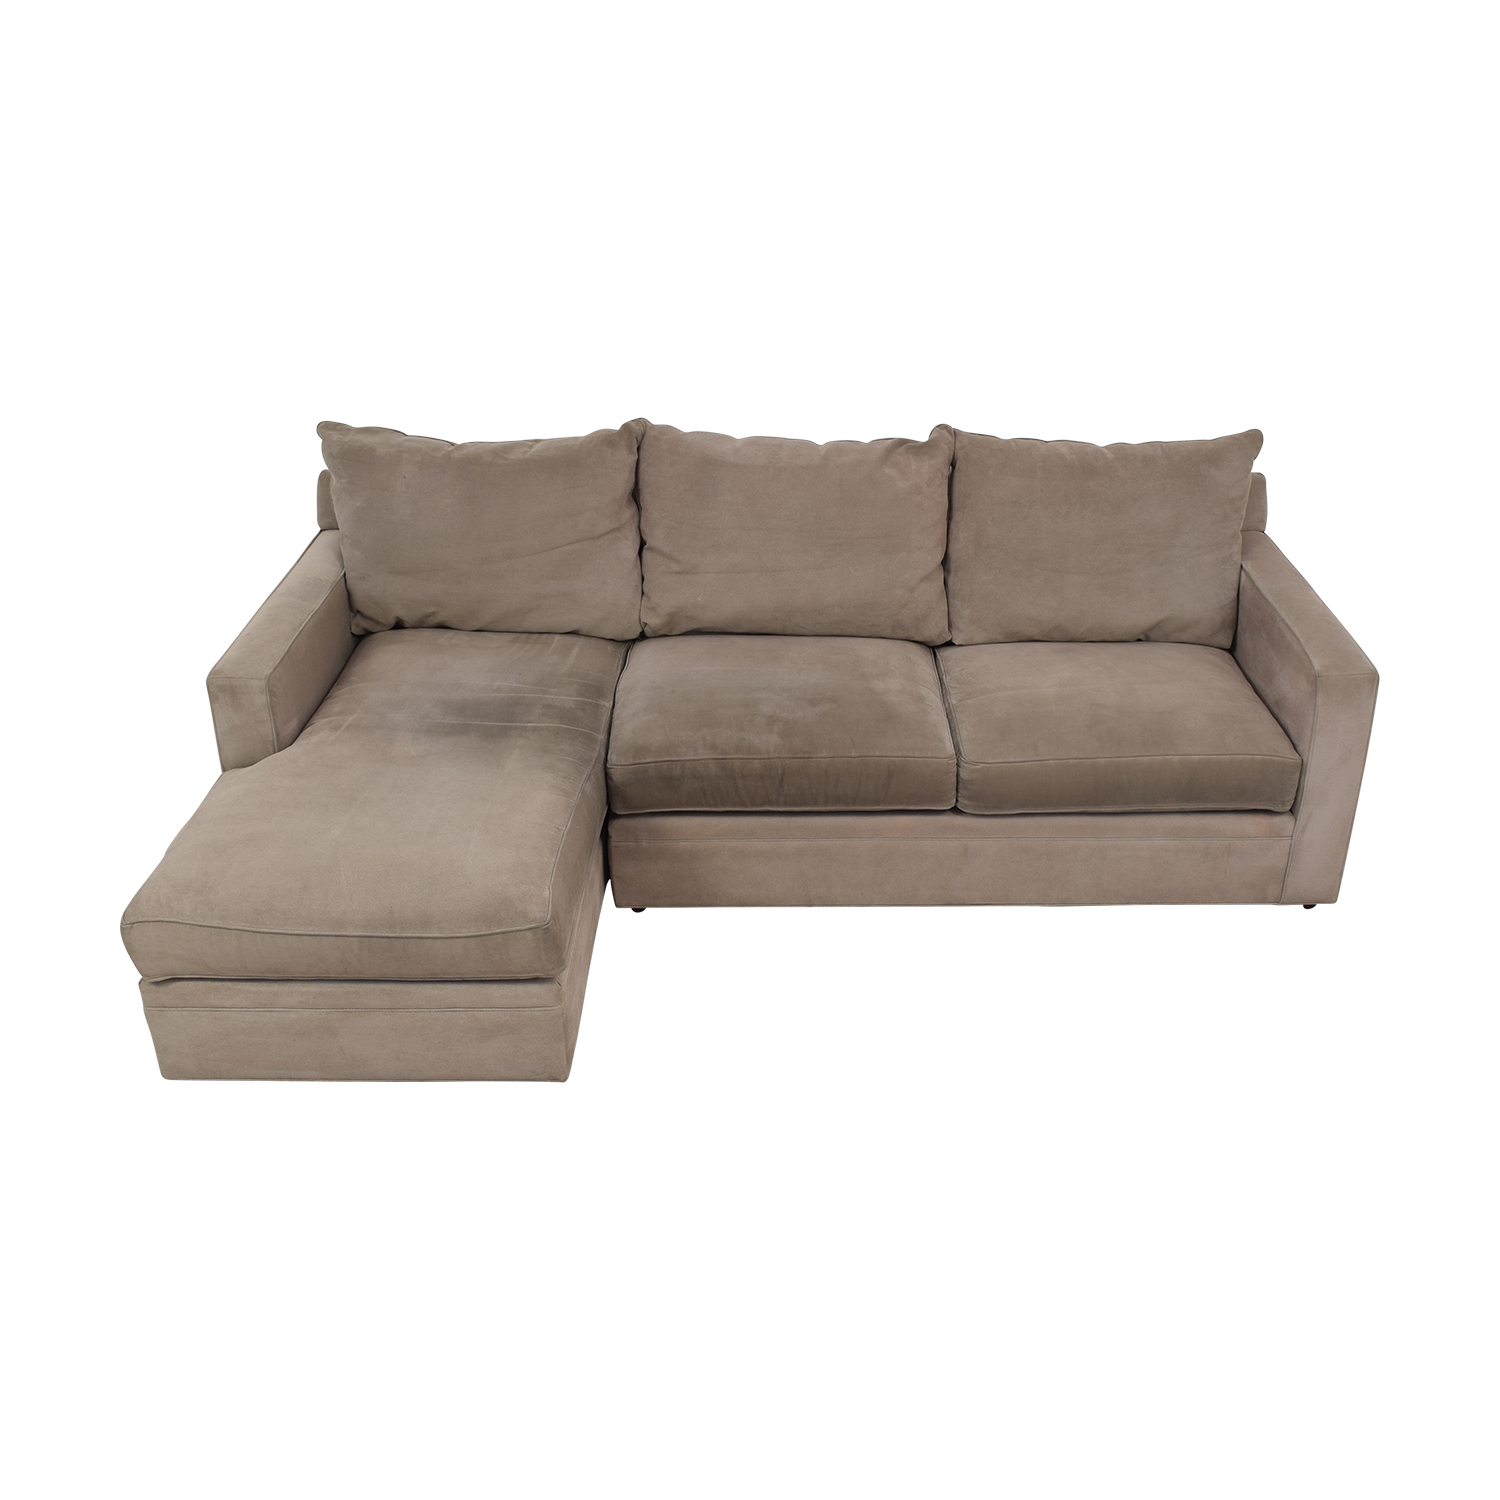 Brilliant 55 Off Room Board Room Board Orson Sectional Couch Sofas Beutiful Home Inspiration Xortanetmahrainfo